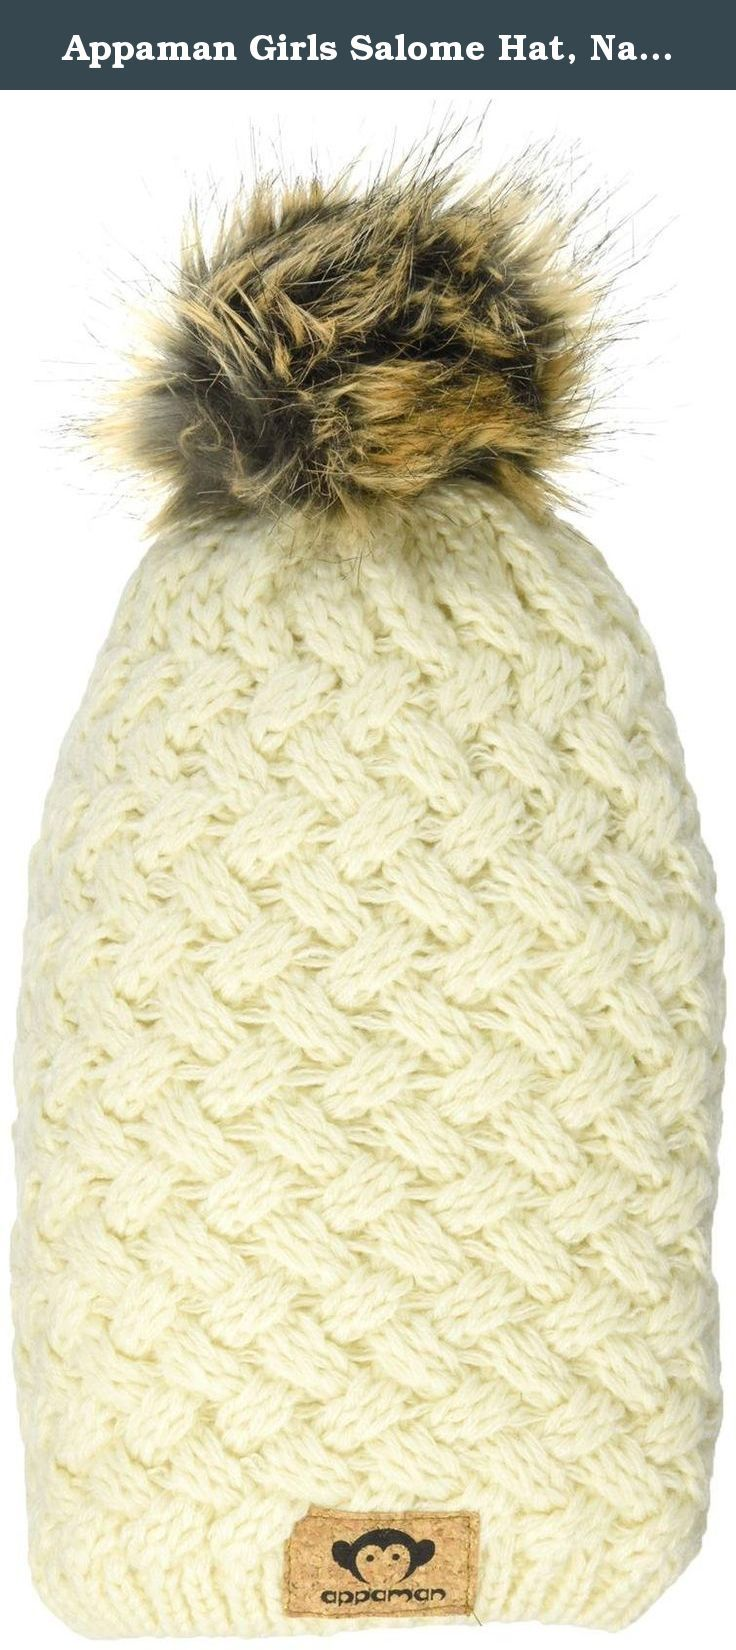 9ee015a9a57 Appaman Girls Salome Hat